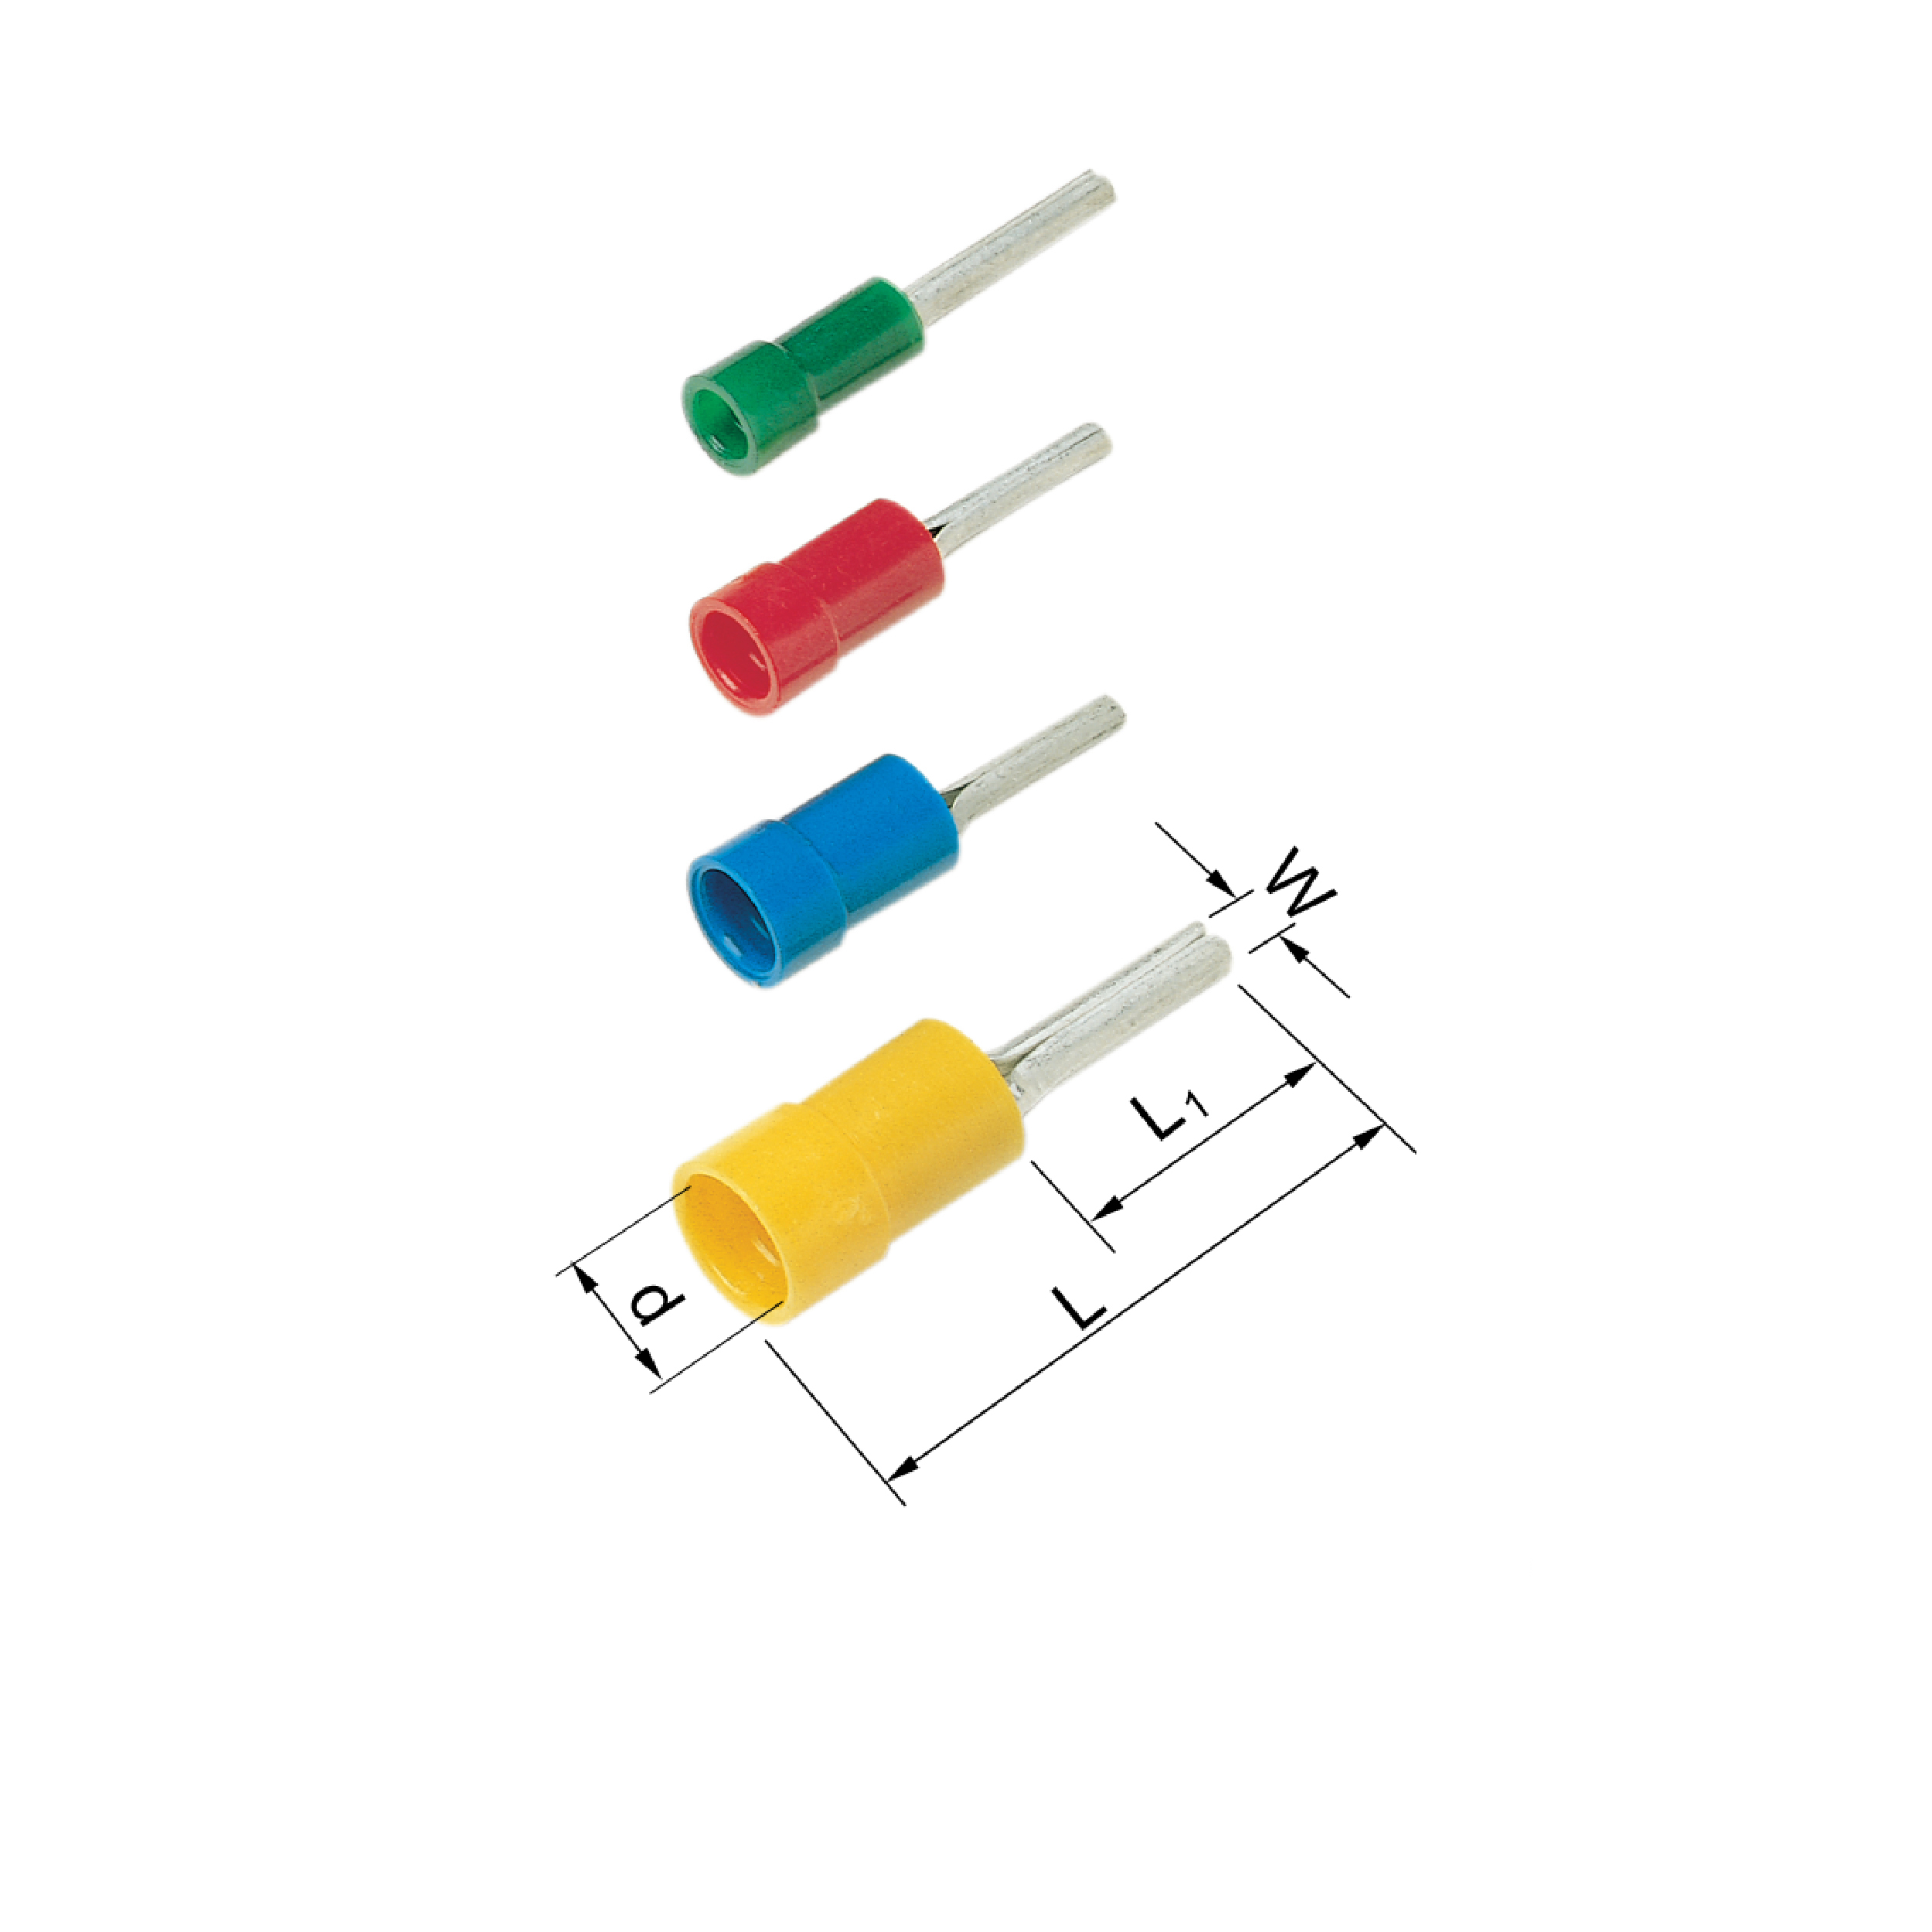 Elpress Pre-Insulated Pin Terminals - Halogen Free (0.1-6mm² )(A1519SR, A1519SRK, A2519SR, A4630SR)